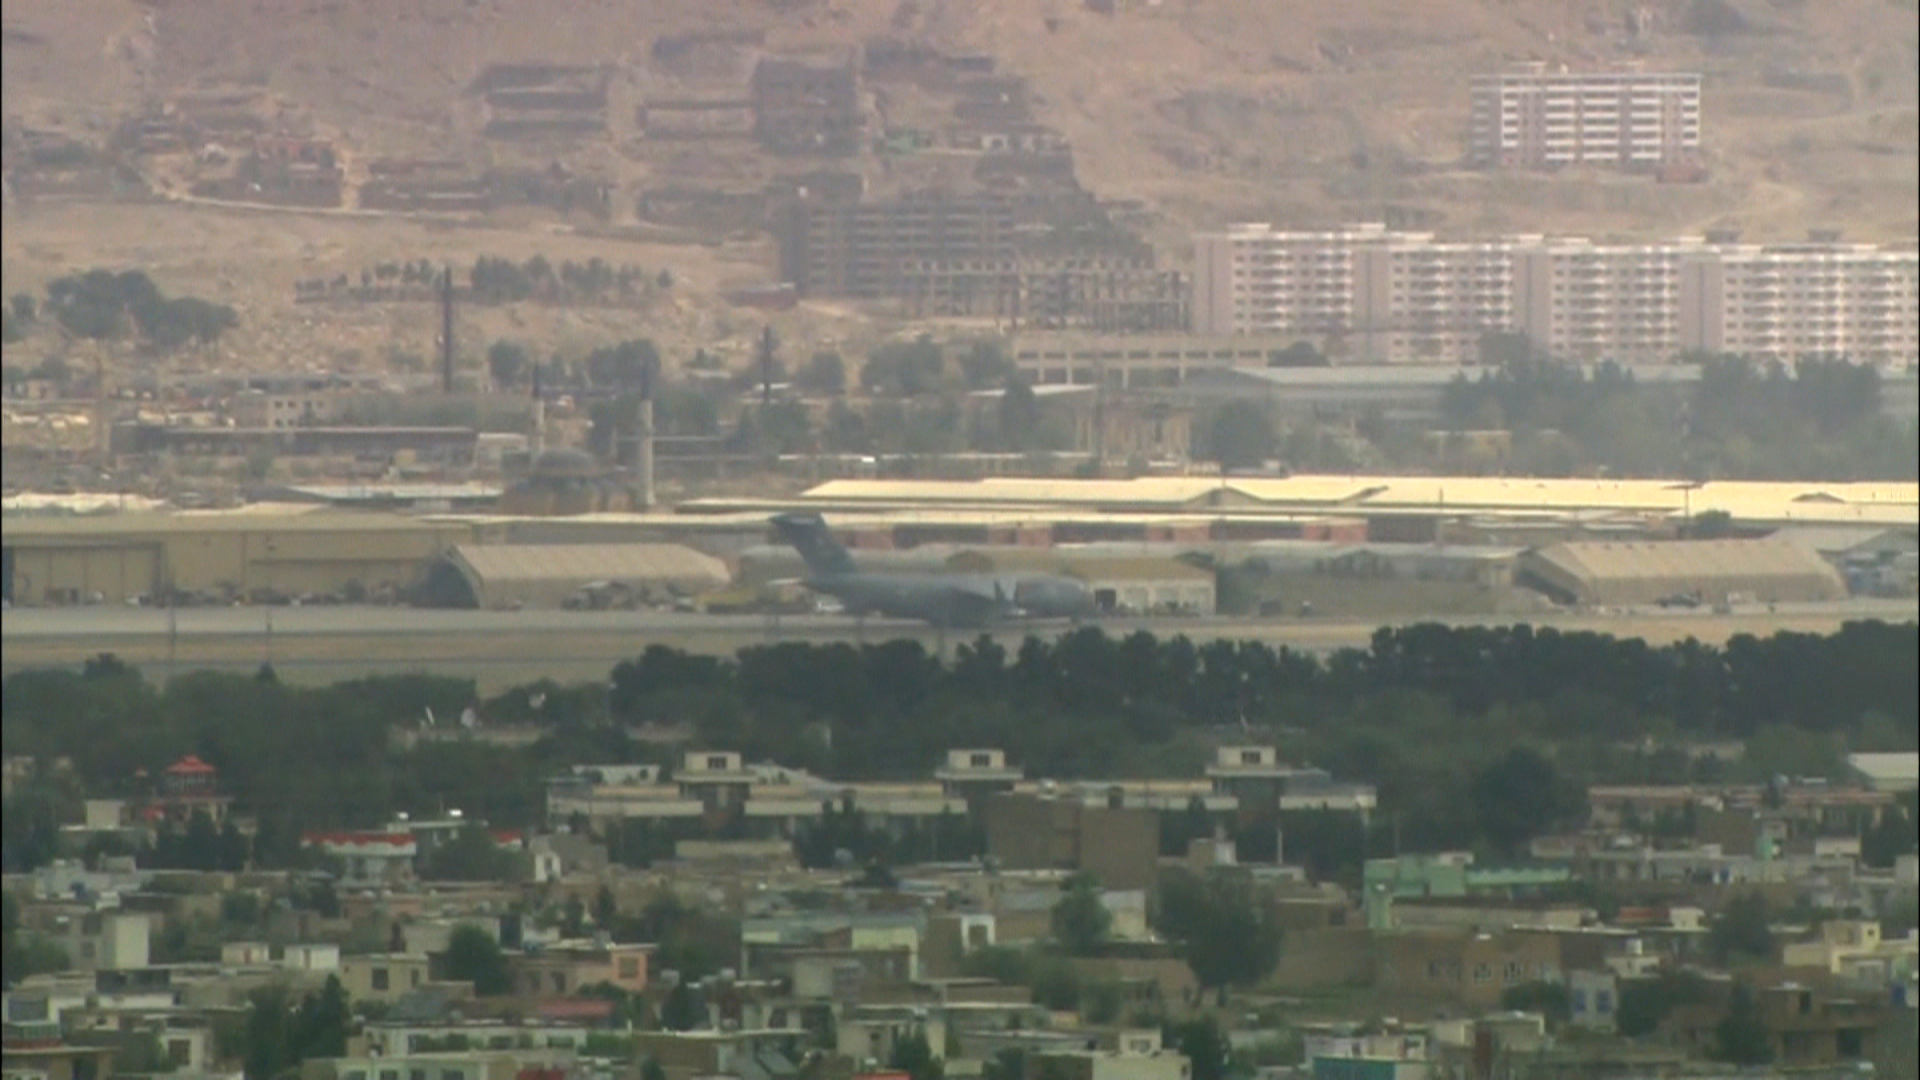 Hamid Karzai International Airport in Kabul, Afghanistan, on Monday, August 30.